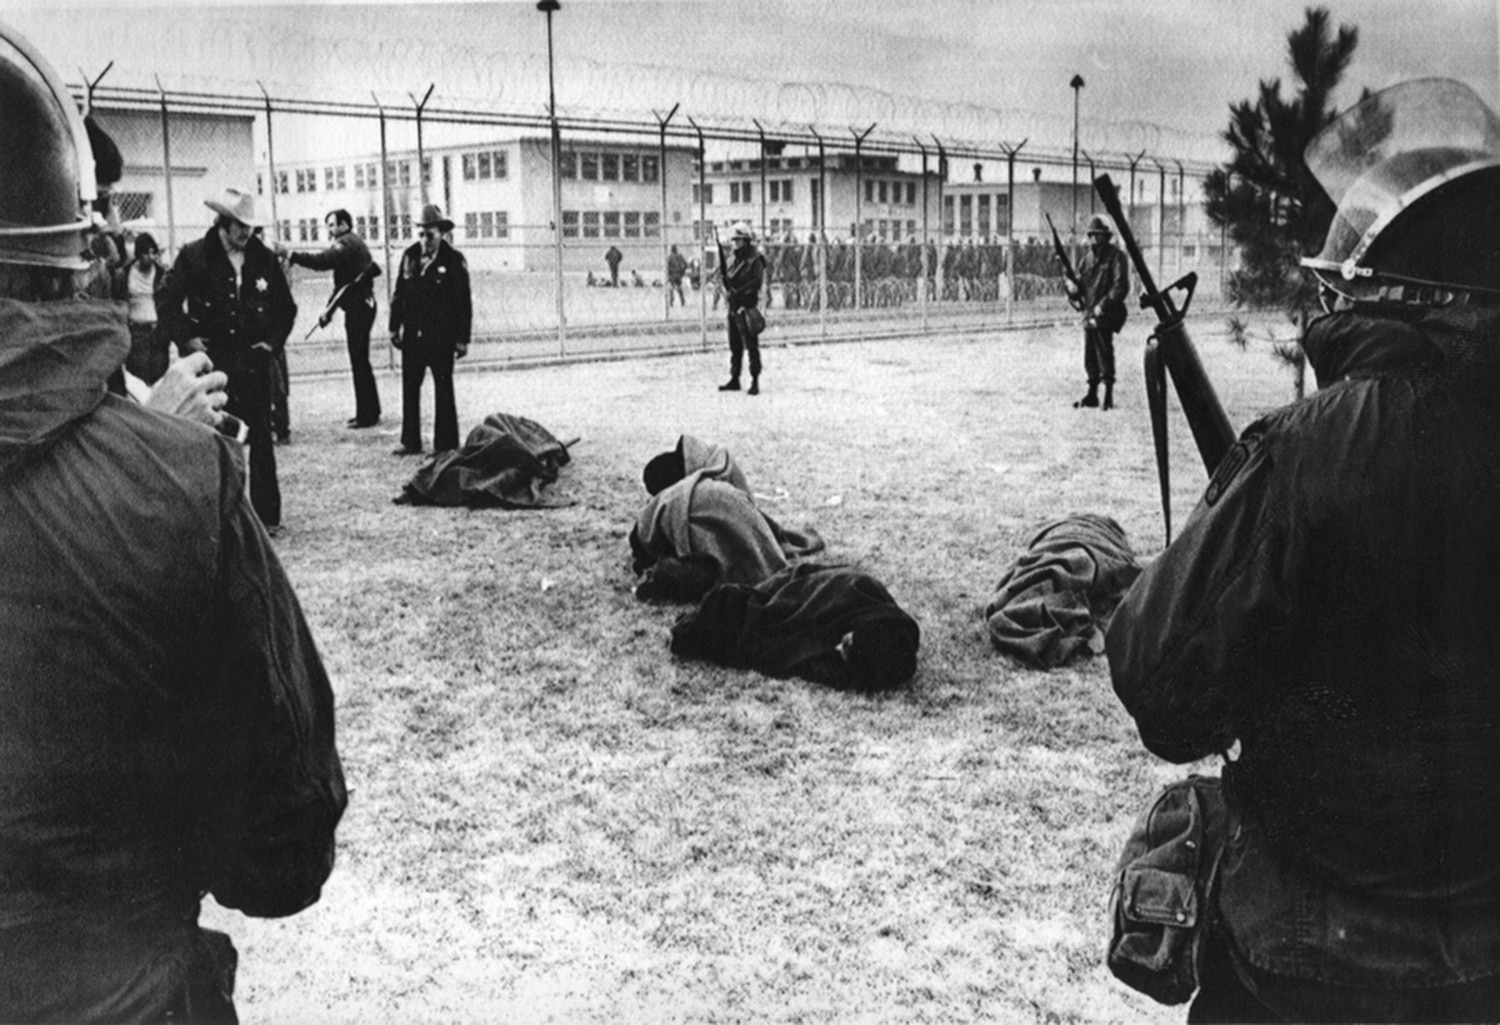 Members of the National Guard watch inmates wrapped in blankets following the riot at the Penitentiary of New Mexico oustide Santa Fe in 1980.